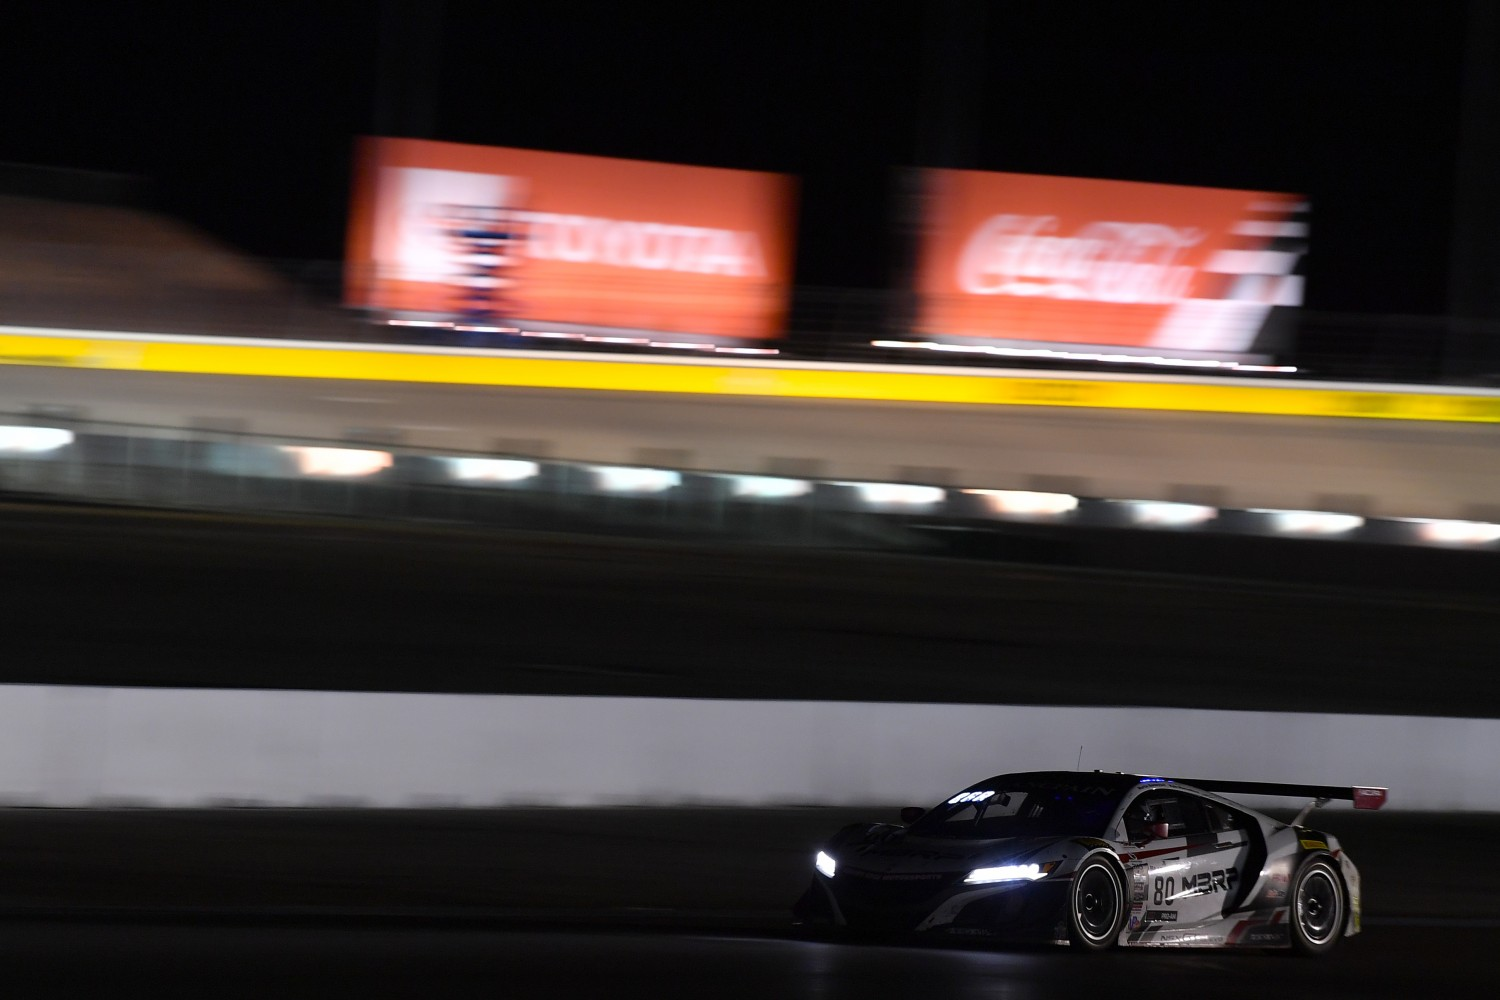 #80 Acura NSX of Martin Barkey and Kyle Marcelli with Racers Edge Motorsports  2019 Blancpain GT World Challenge America - Las Vegas, Las Vegas NV | Gavin Baker/SRO